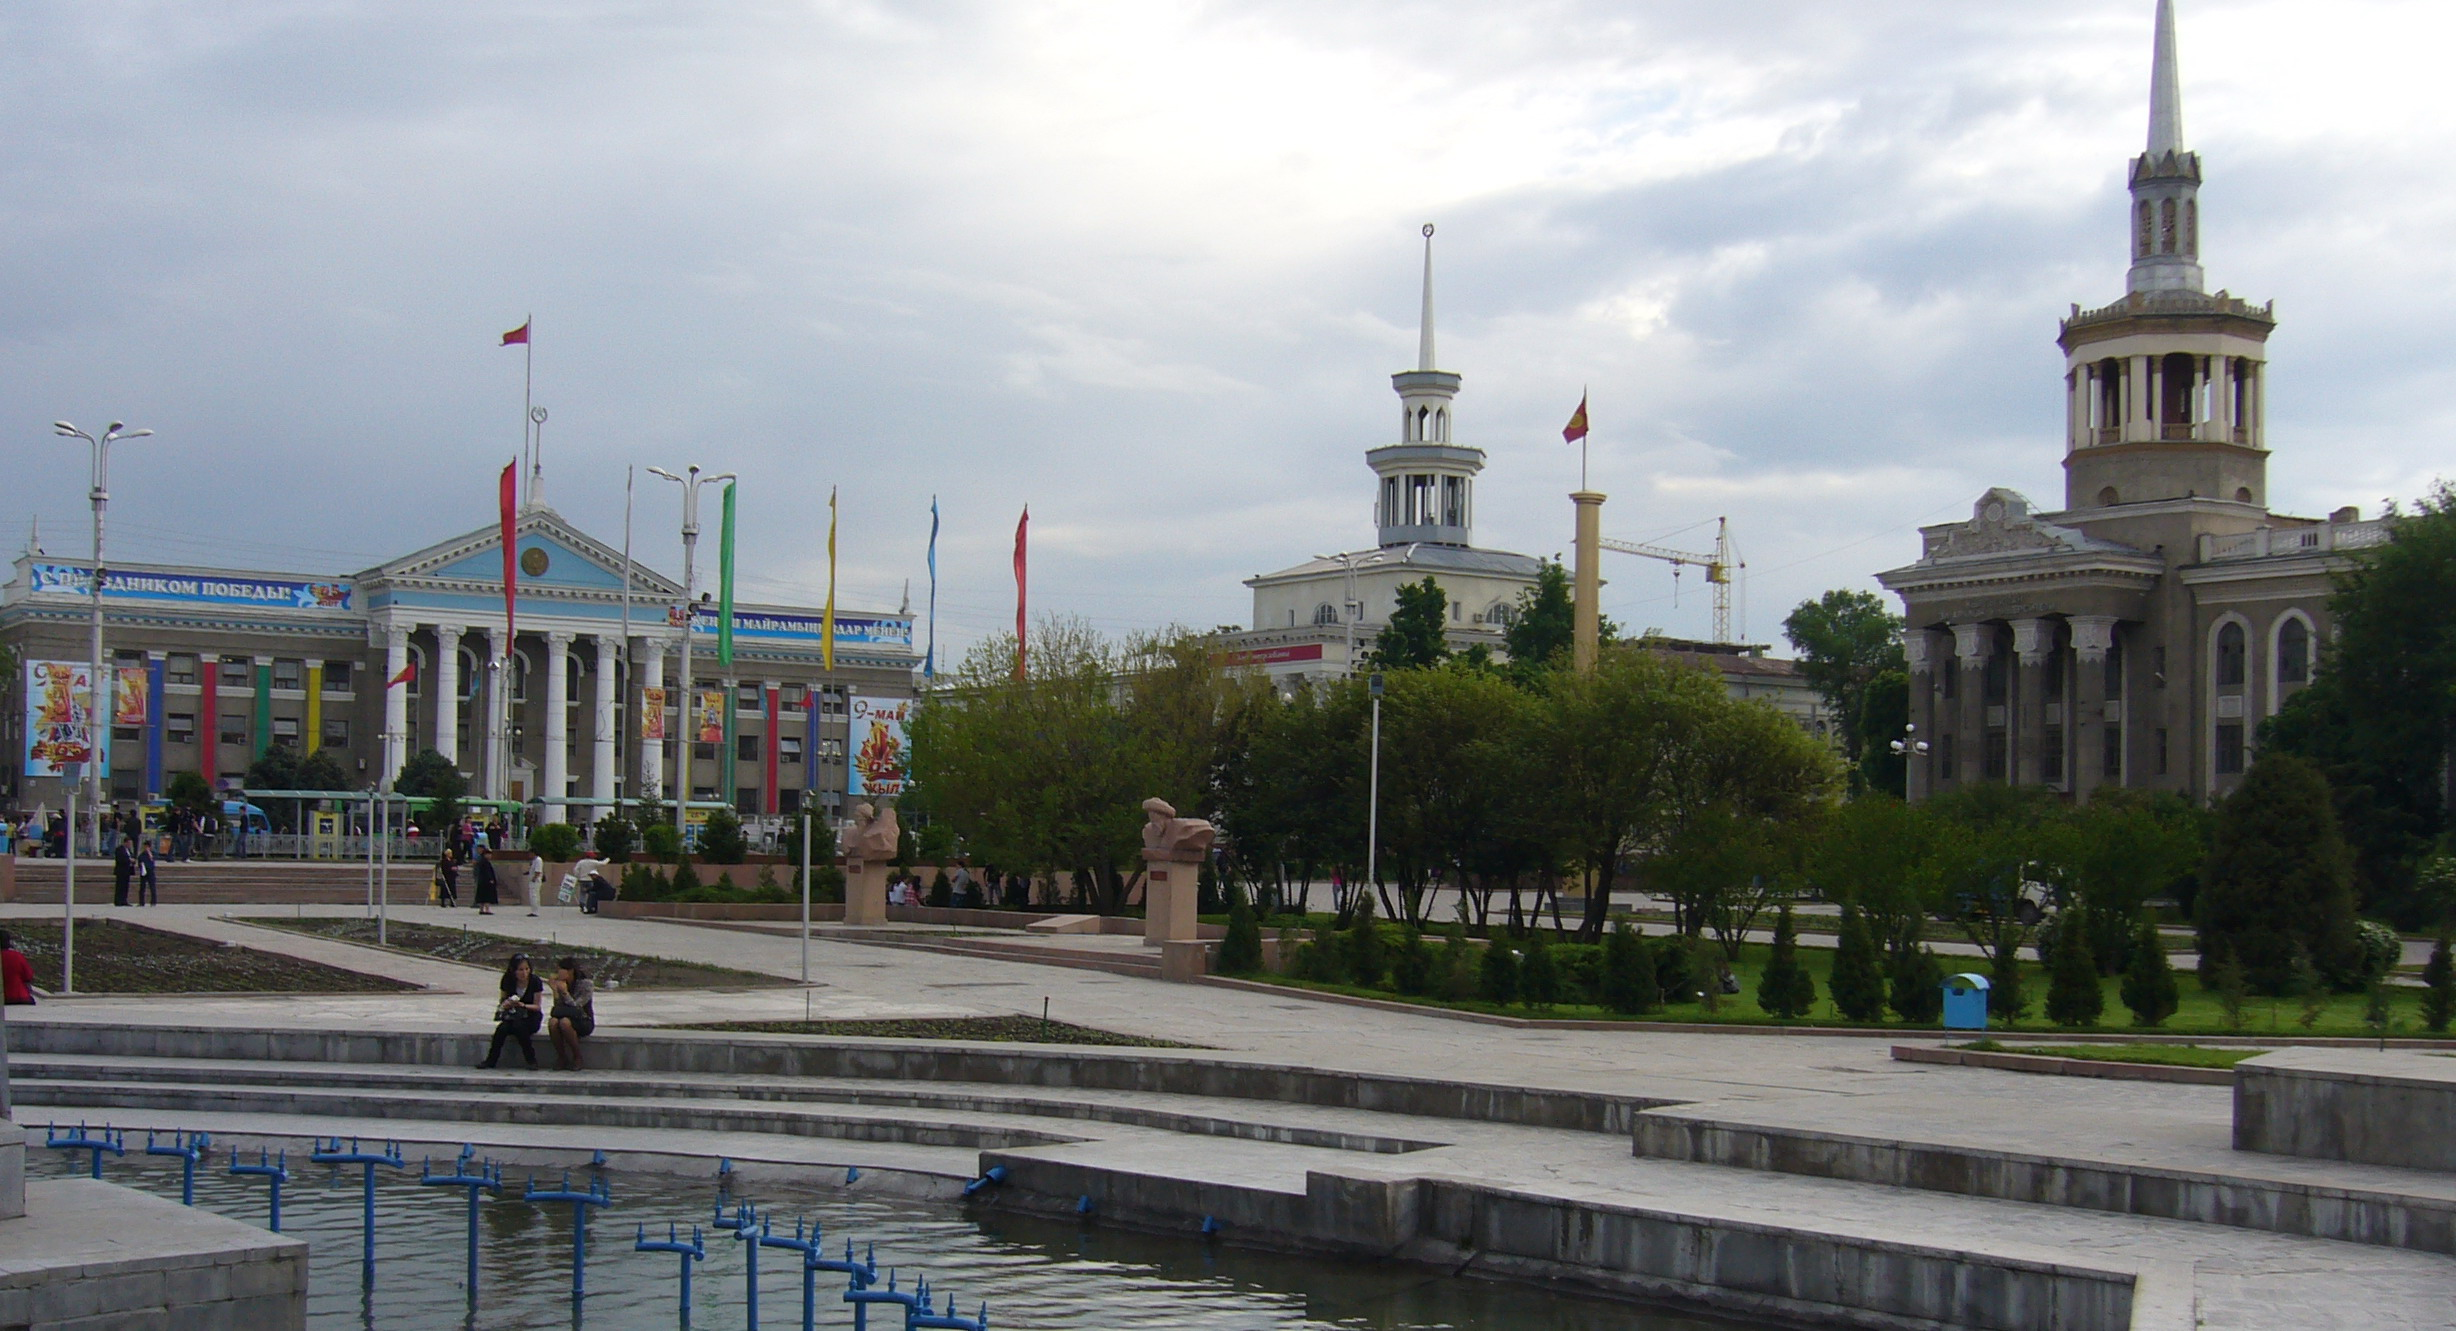 The results of the referendum in Kyrgyzstan announced